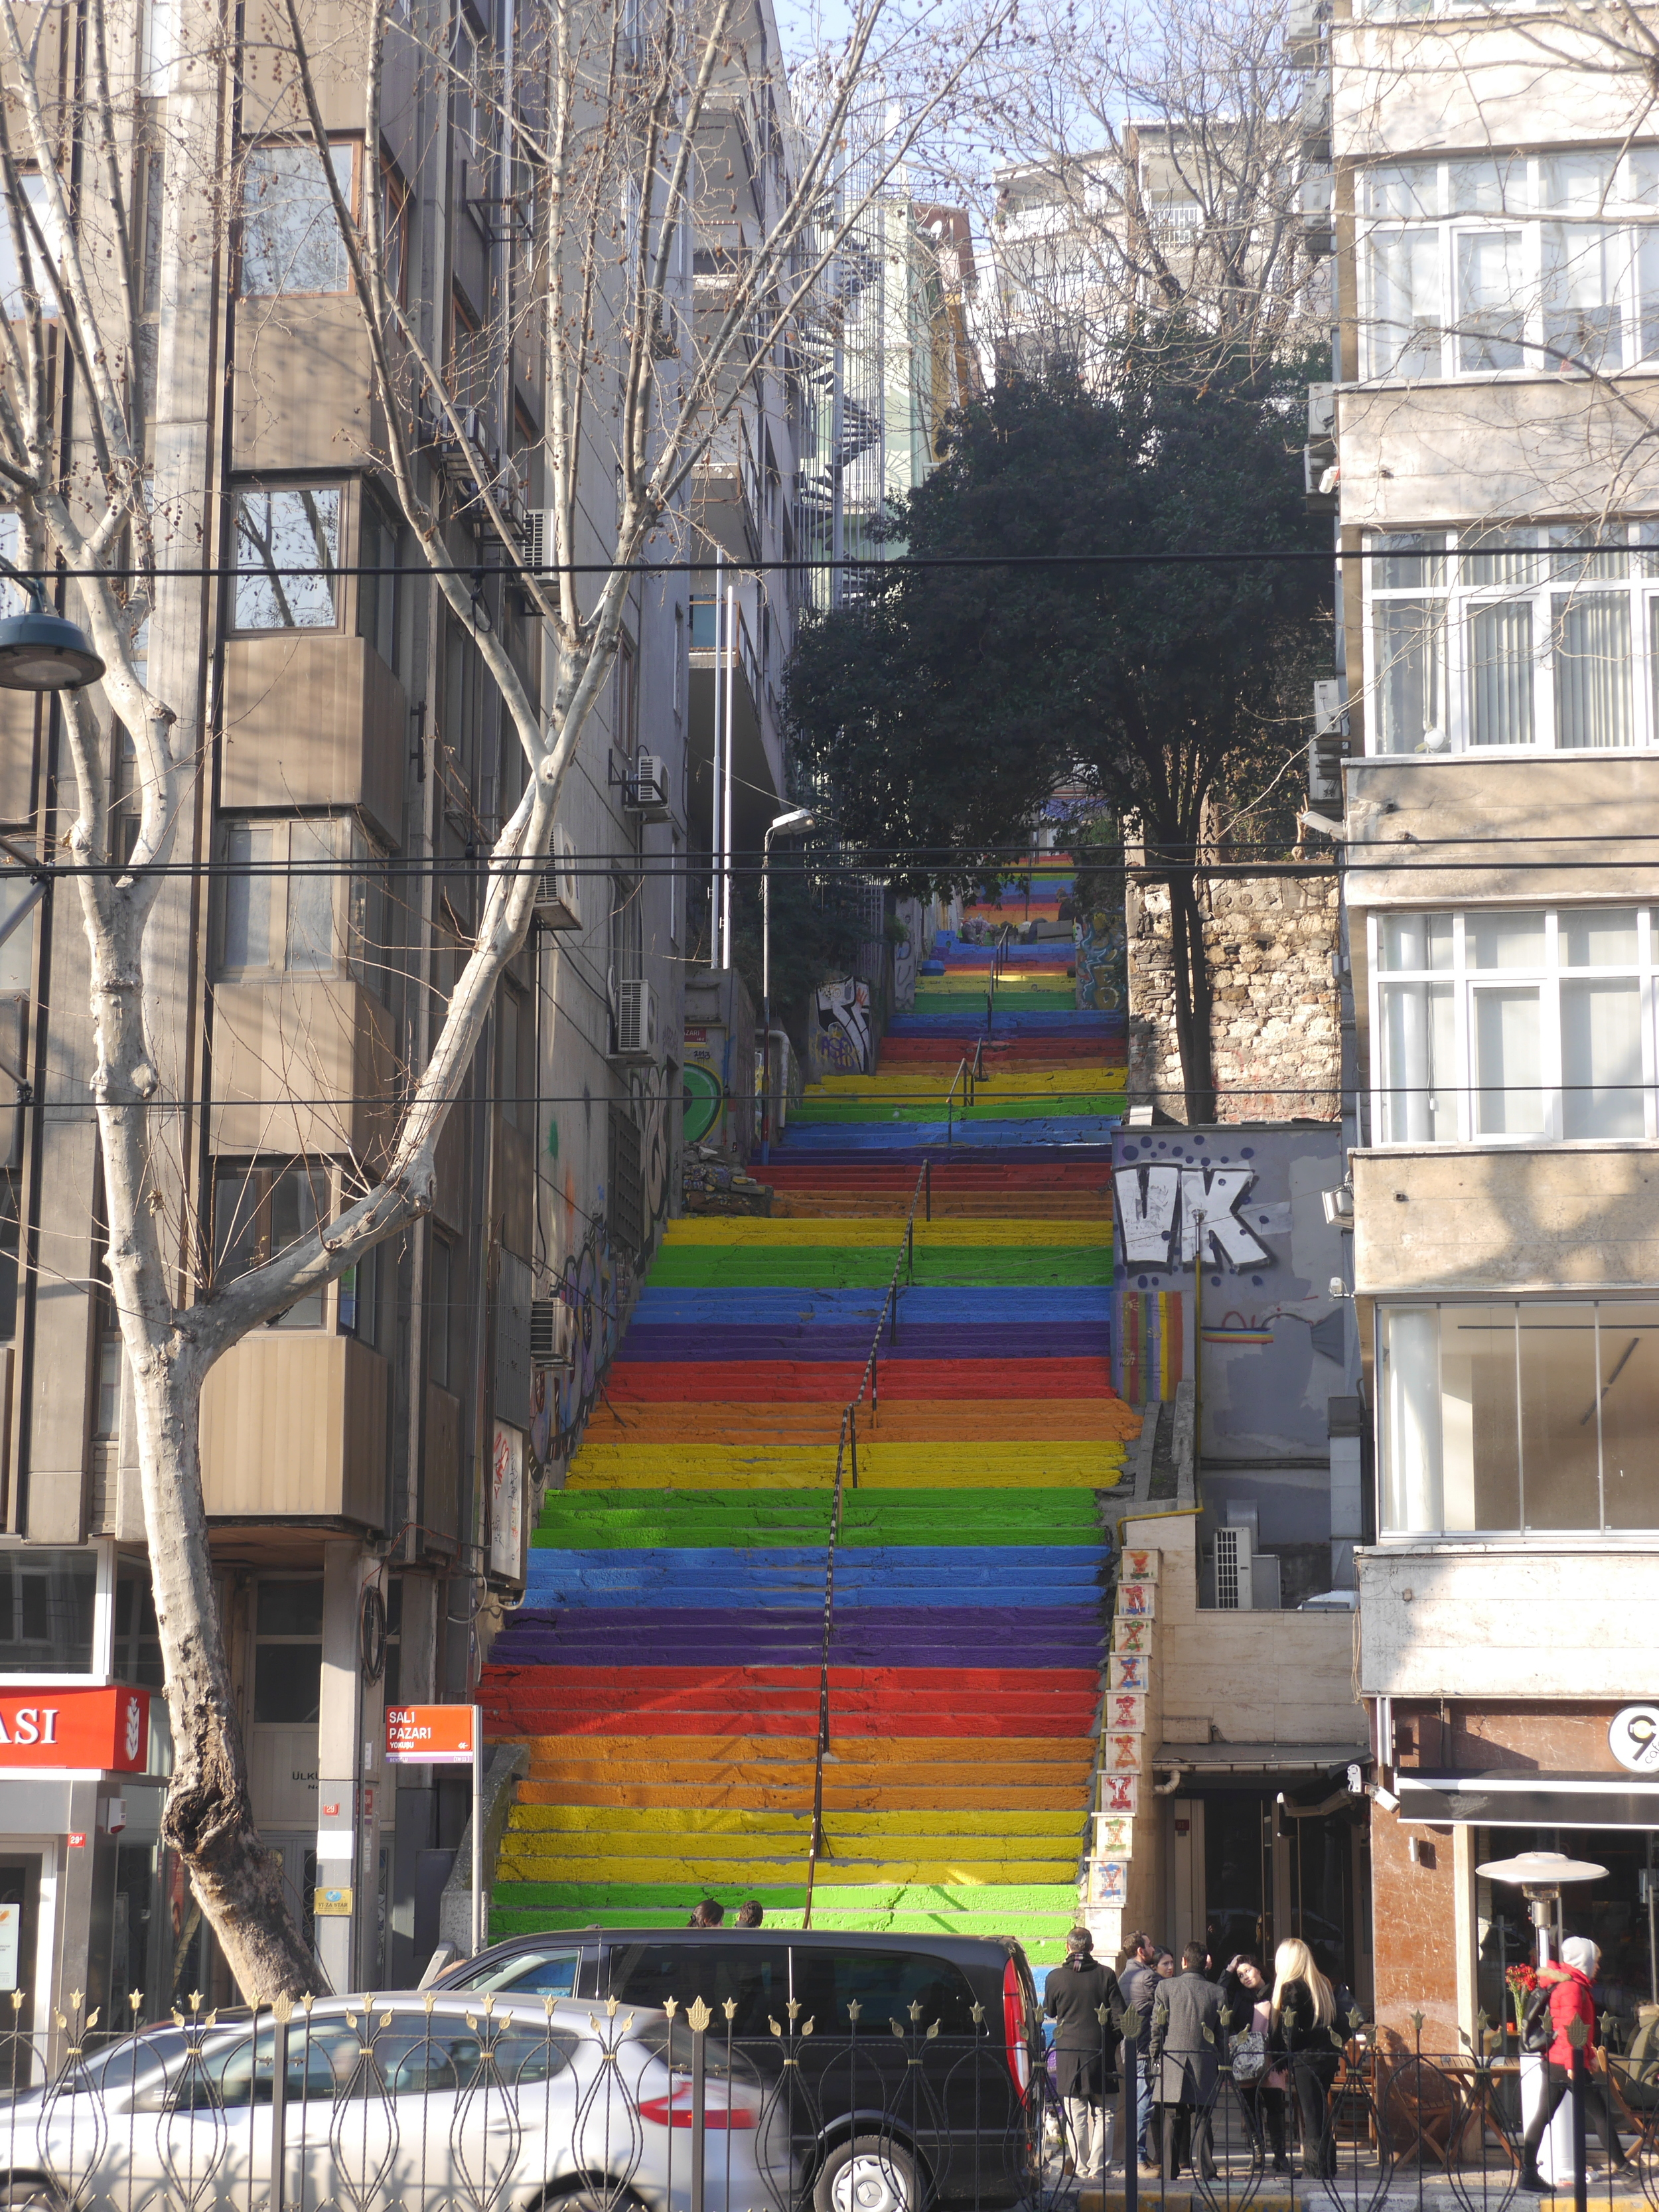 Super cool rainbow stairs.